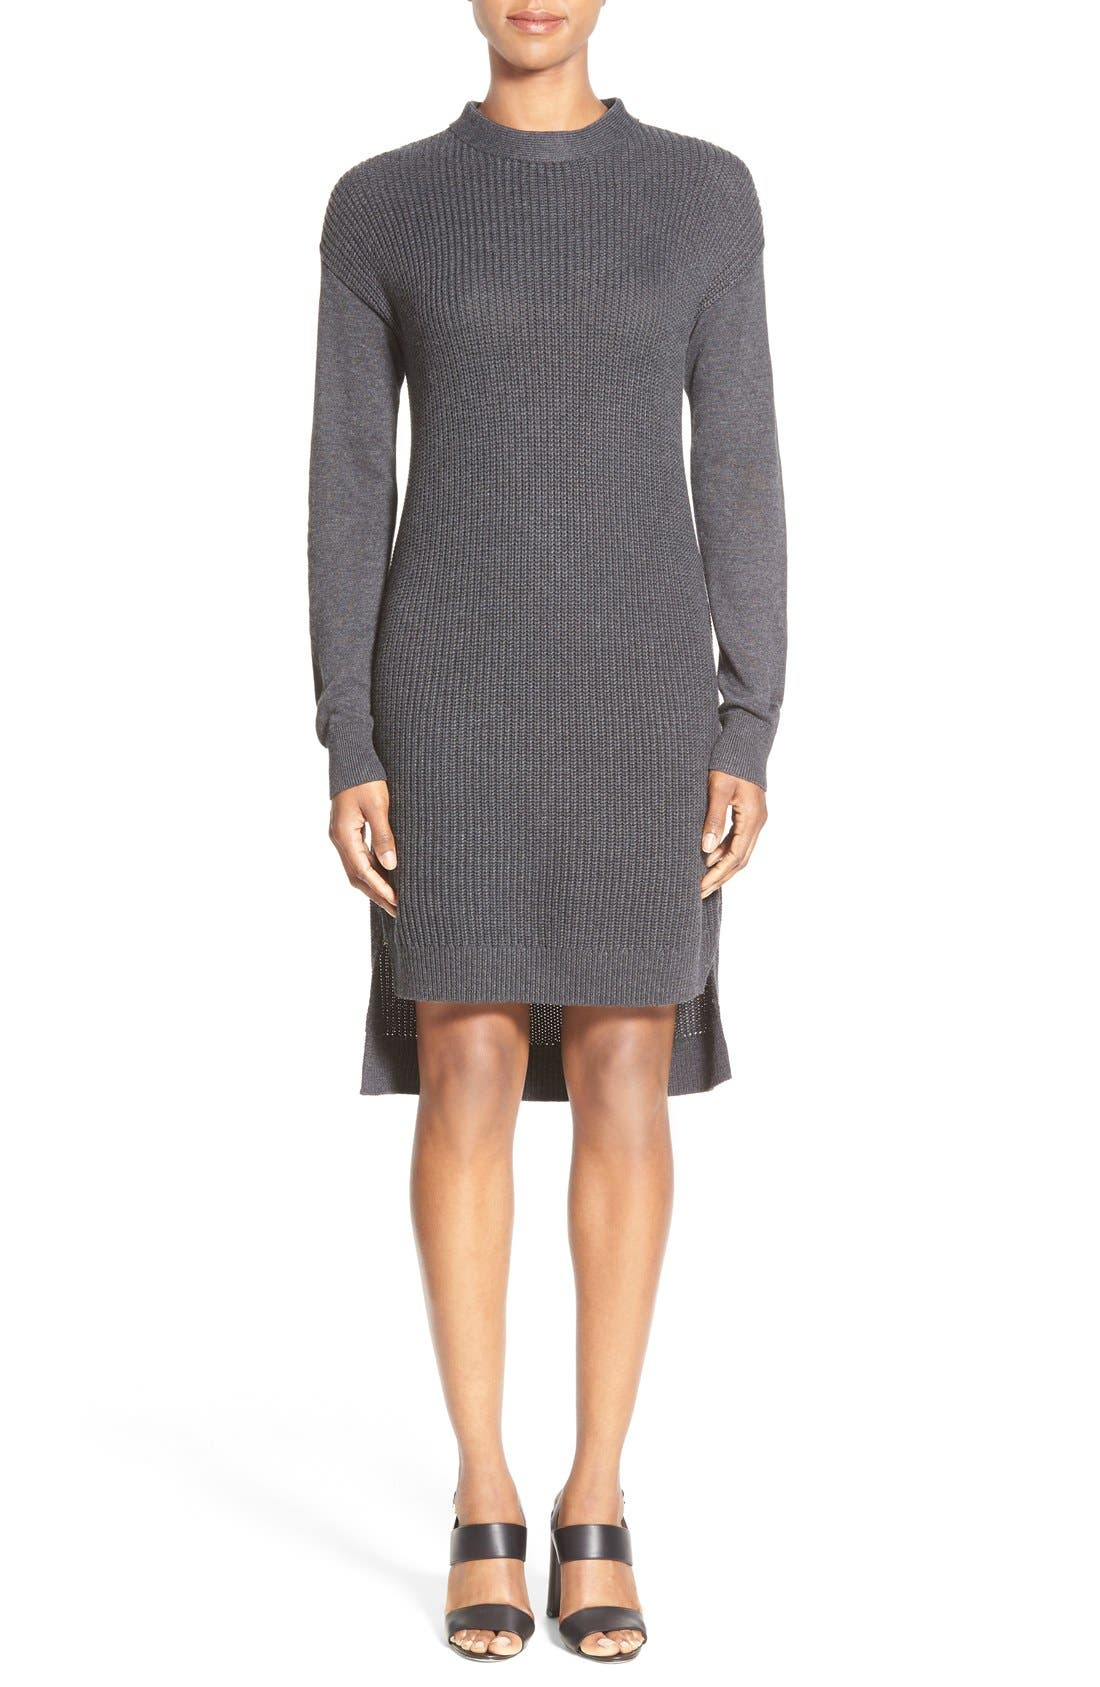 Alternate Image 1 Selected - Halogen® Stitch Detail Knit Tunic (Regular & Petite)